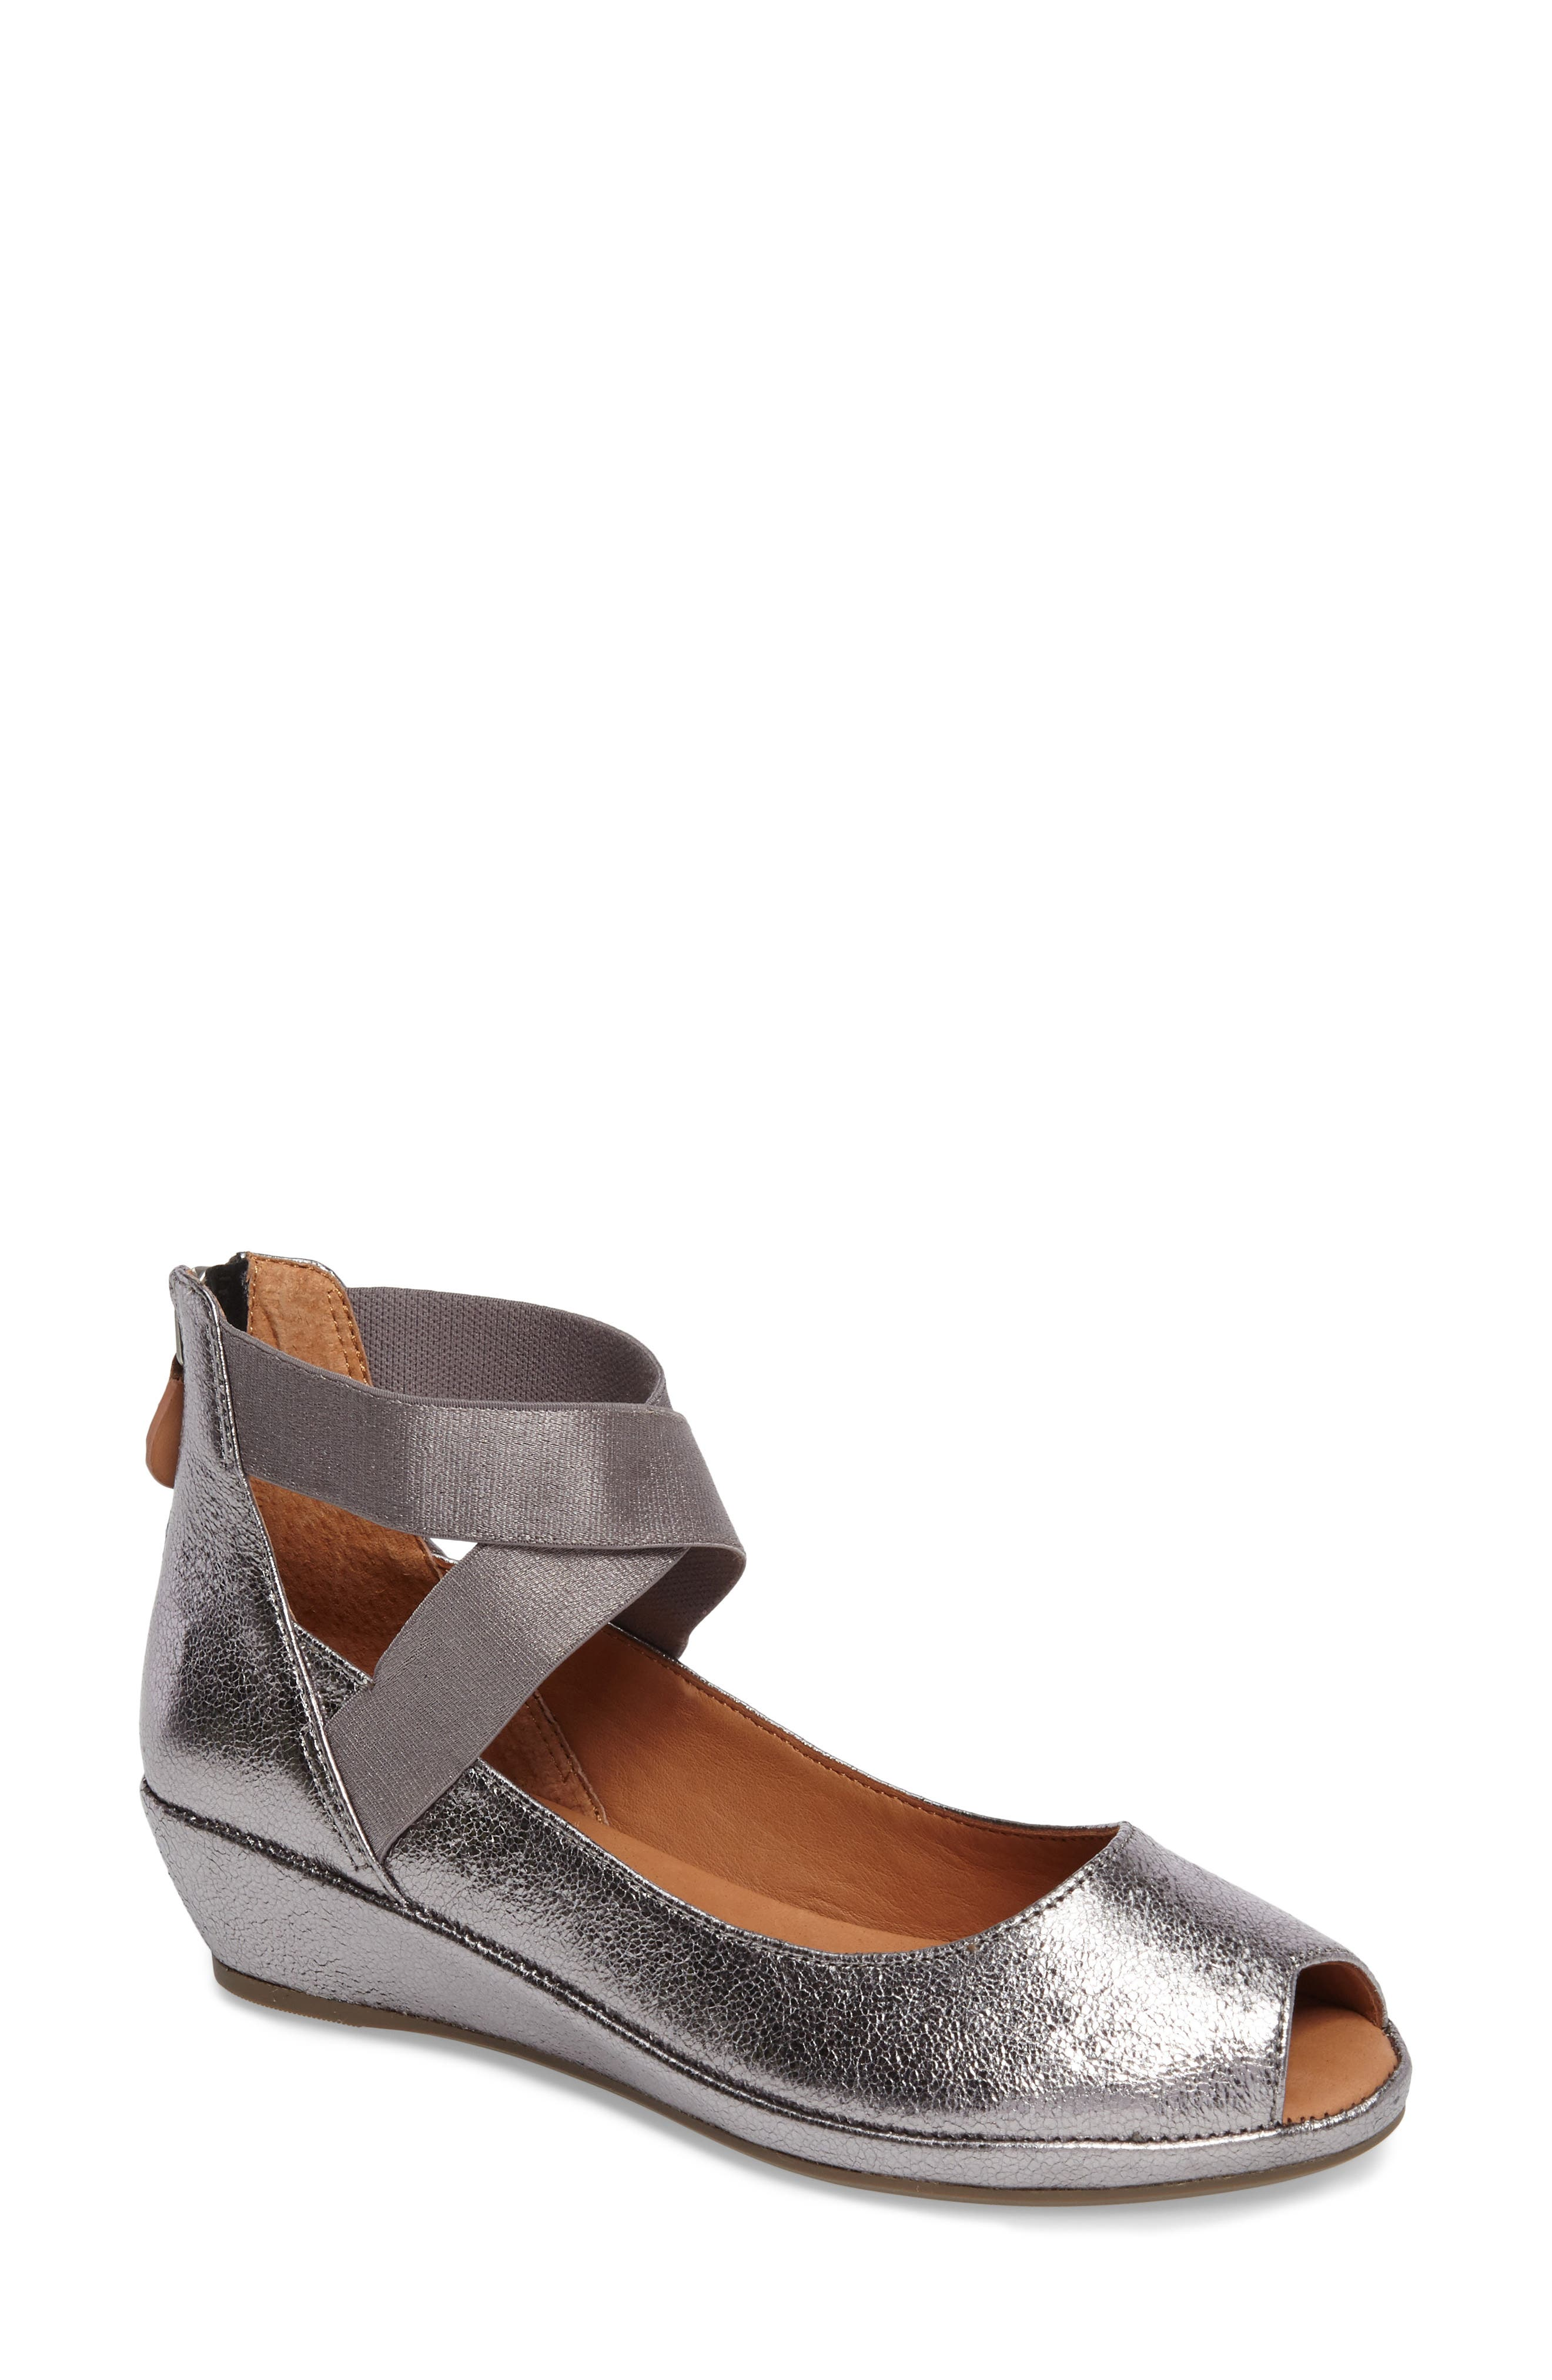 Lisa Wedge Pump,                         Main,                         color, Anthracite Leather